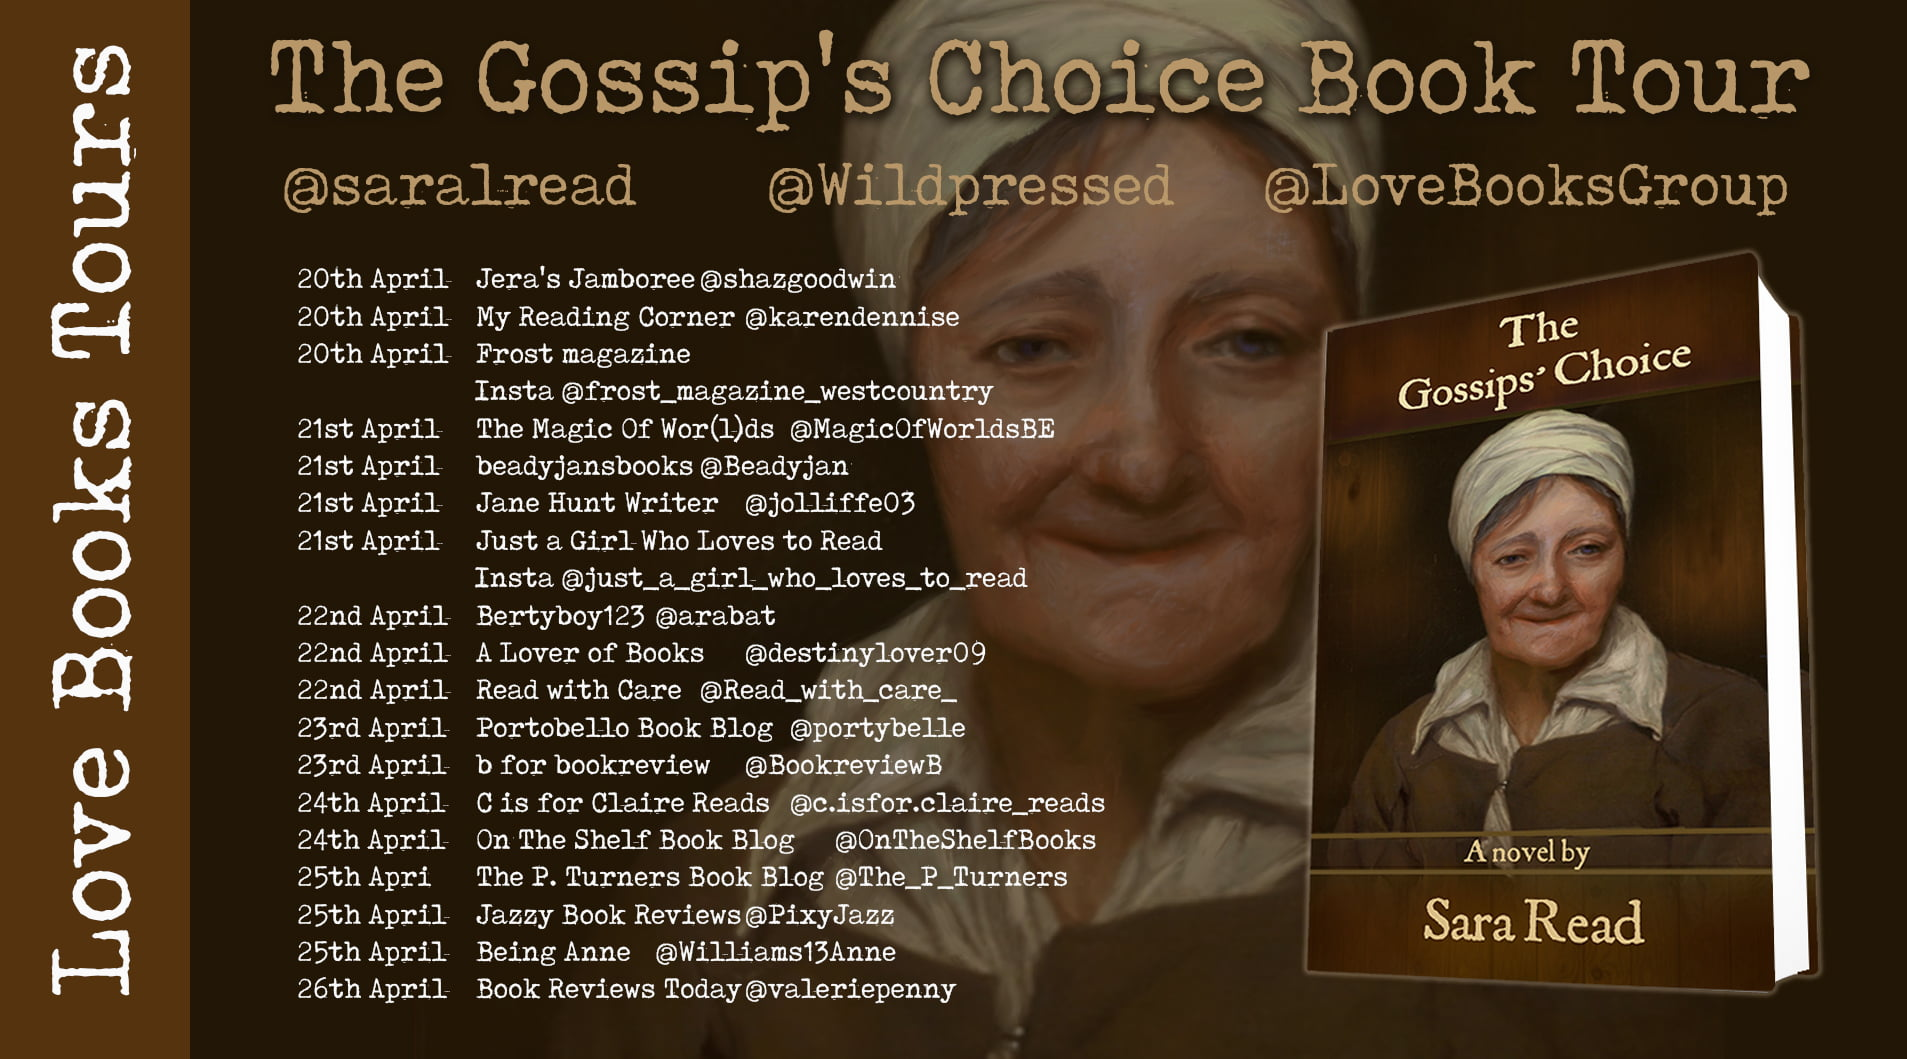 The Gossip's Choice – Sara Read